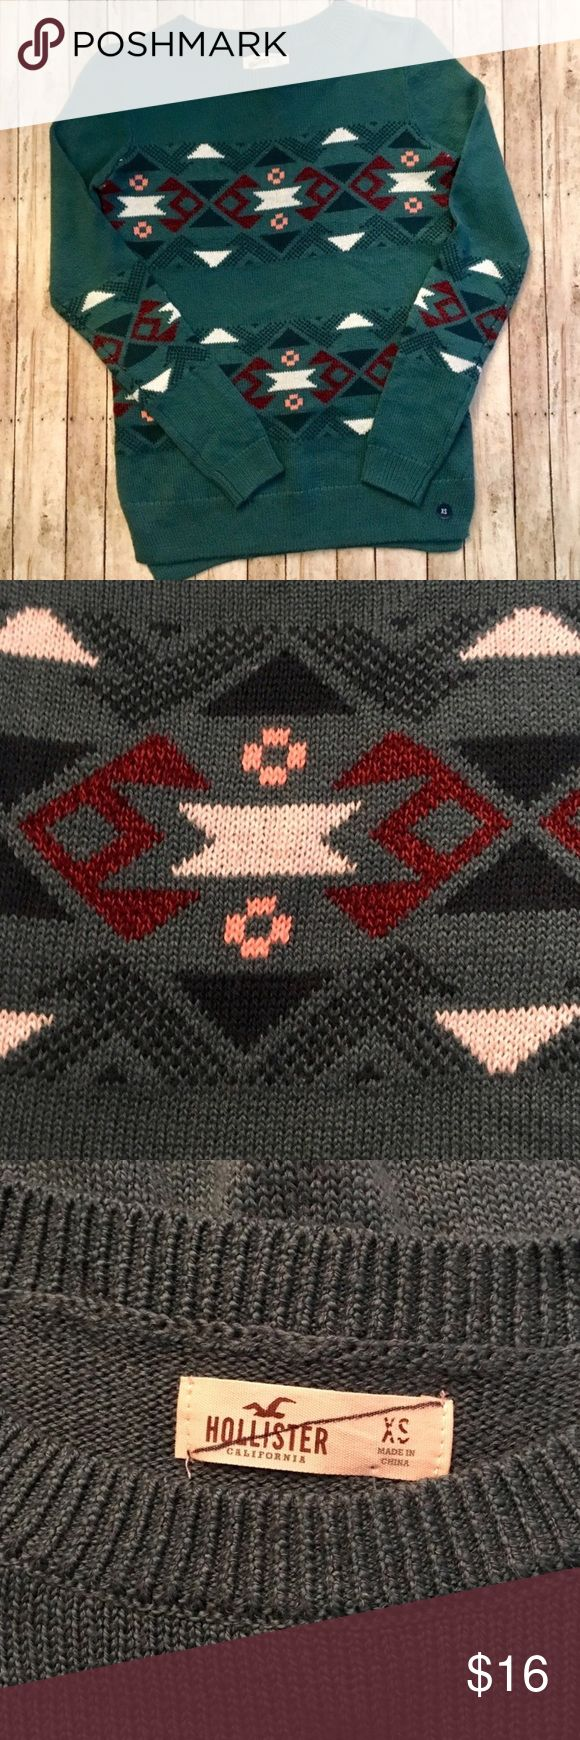 Hollister Tribal Print Sweater • NWOT, never been worn • Soft and comfy • 54% cotton, 34% acrylic • Tag crossed out to prevent returns to store • Hollister Sweaters